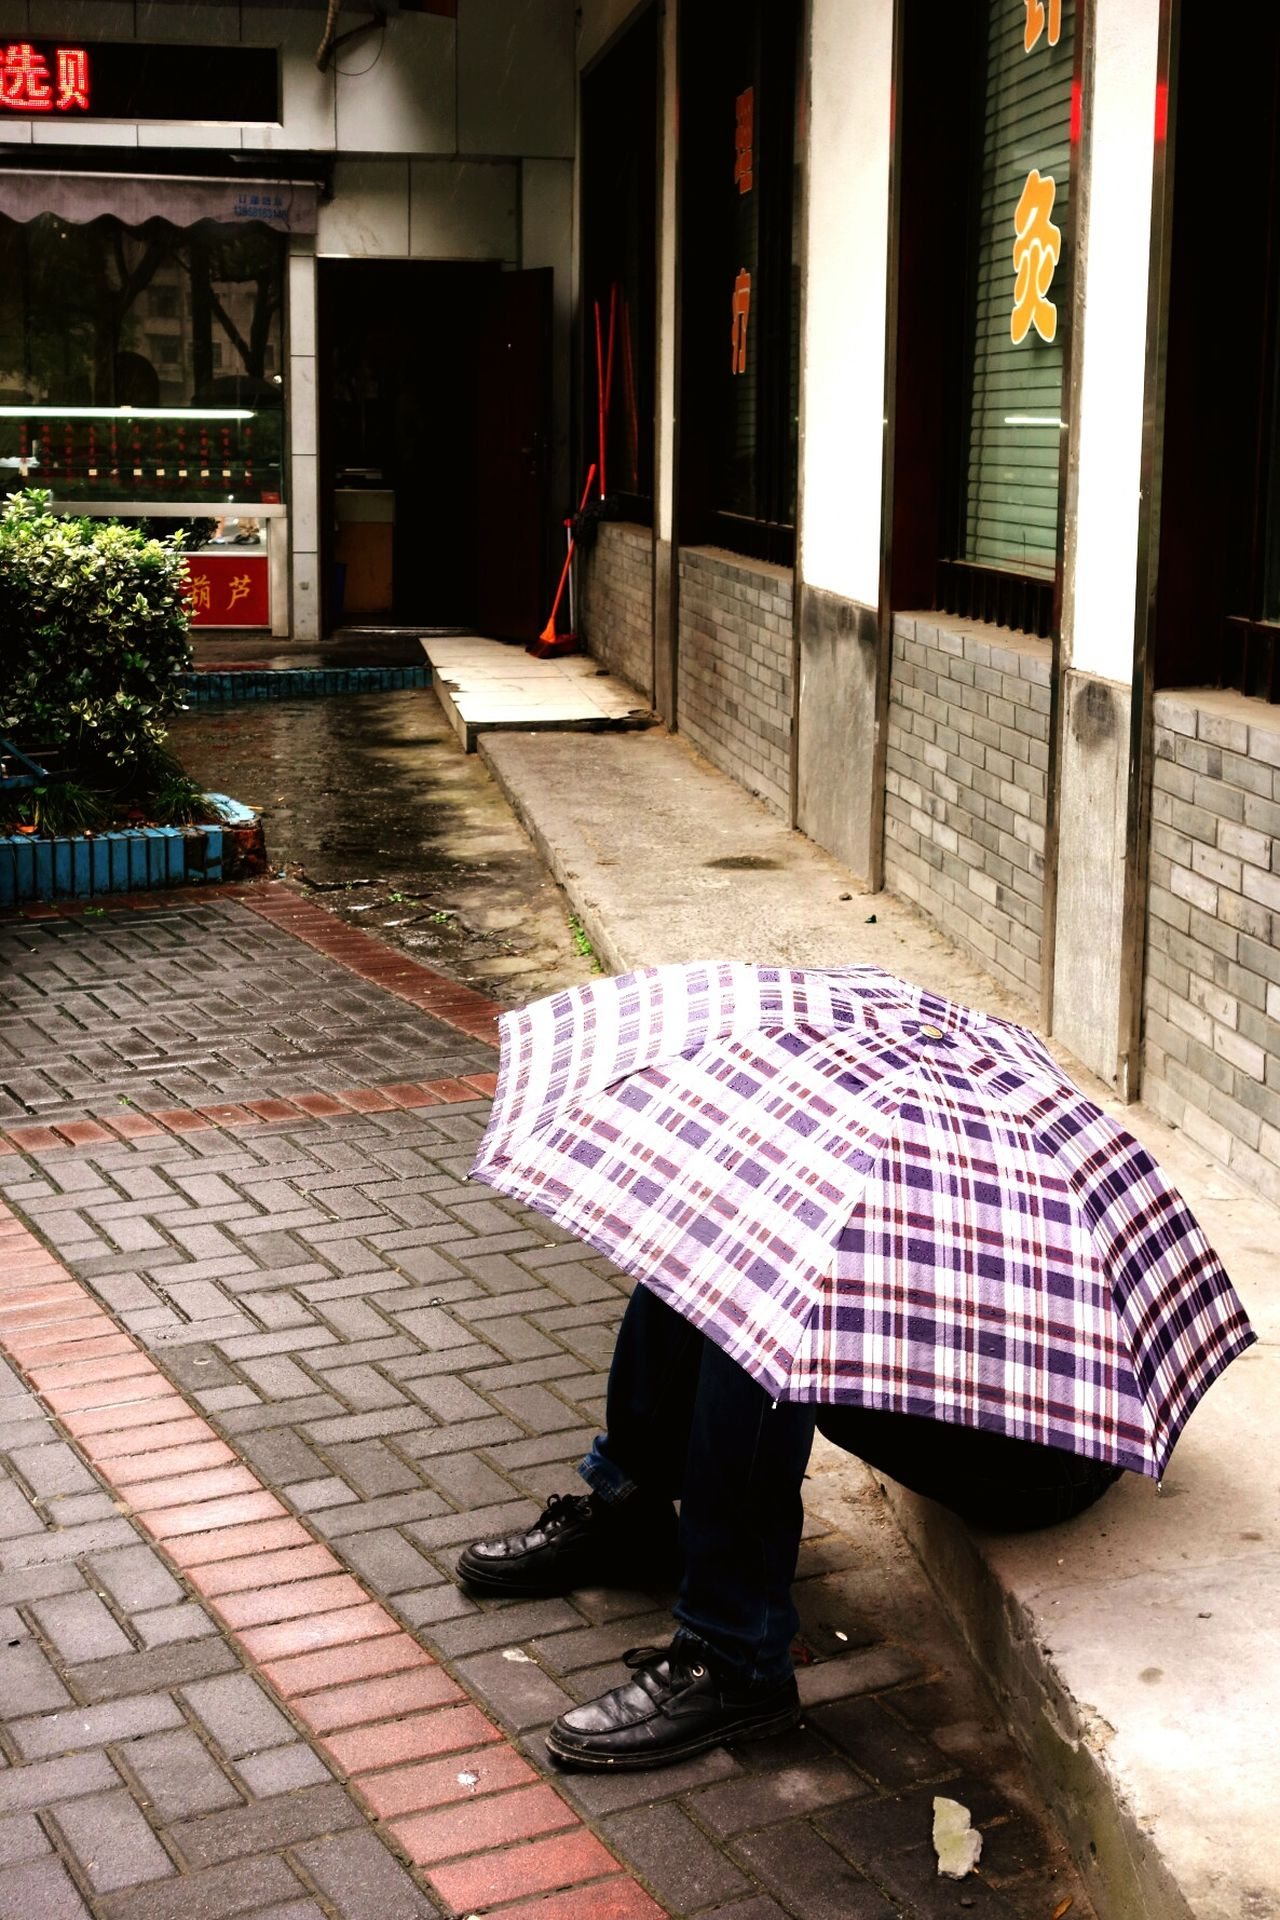 We will Melt away if there is more Rain . Hangzhou Funny Oddity Umbrella Street Photography China